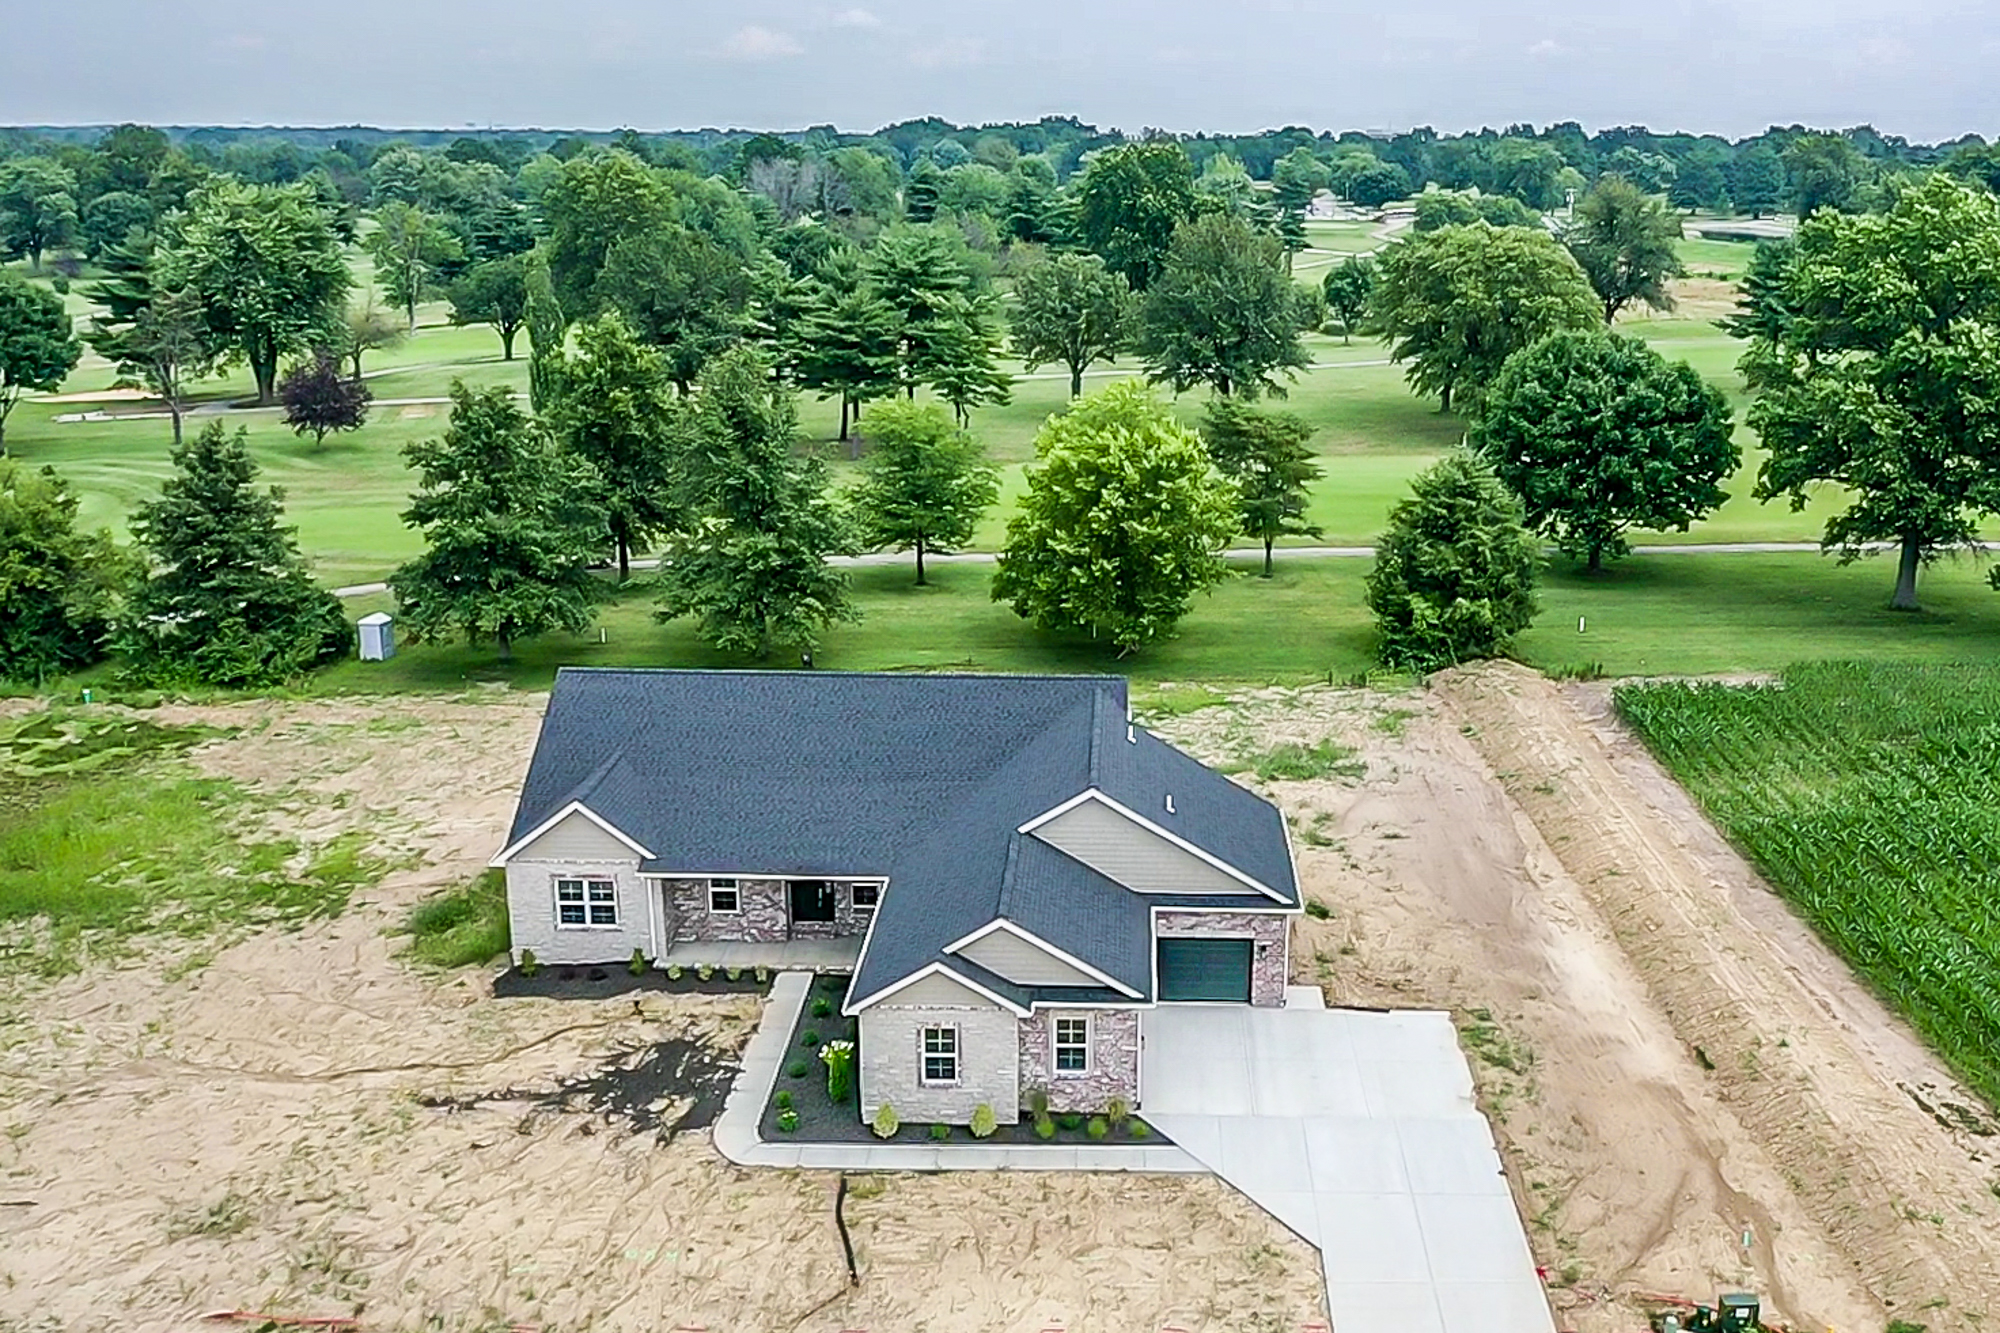 Home-For-Sale-Shiloh-Illinois-62269-Scott-AFB-9.jpg